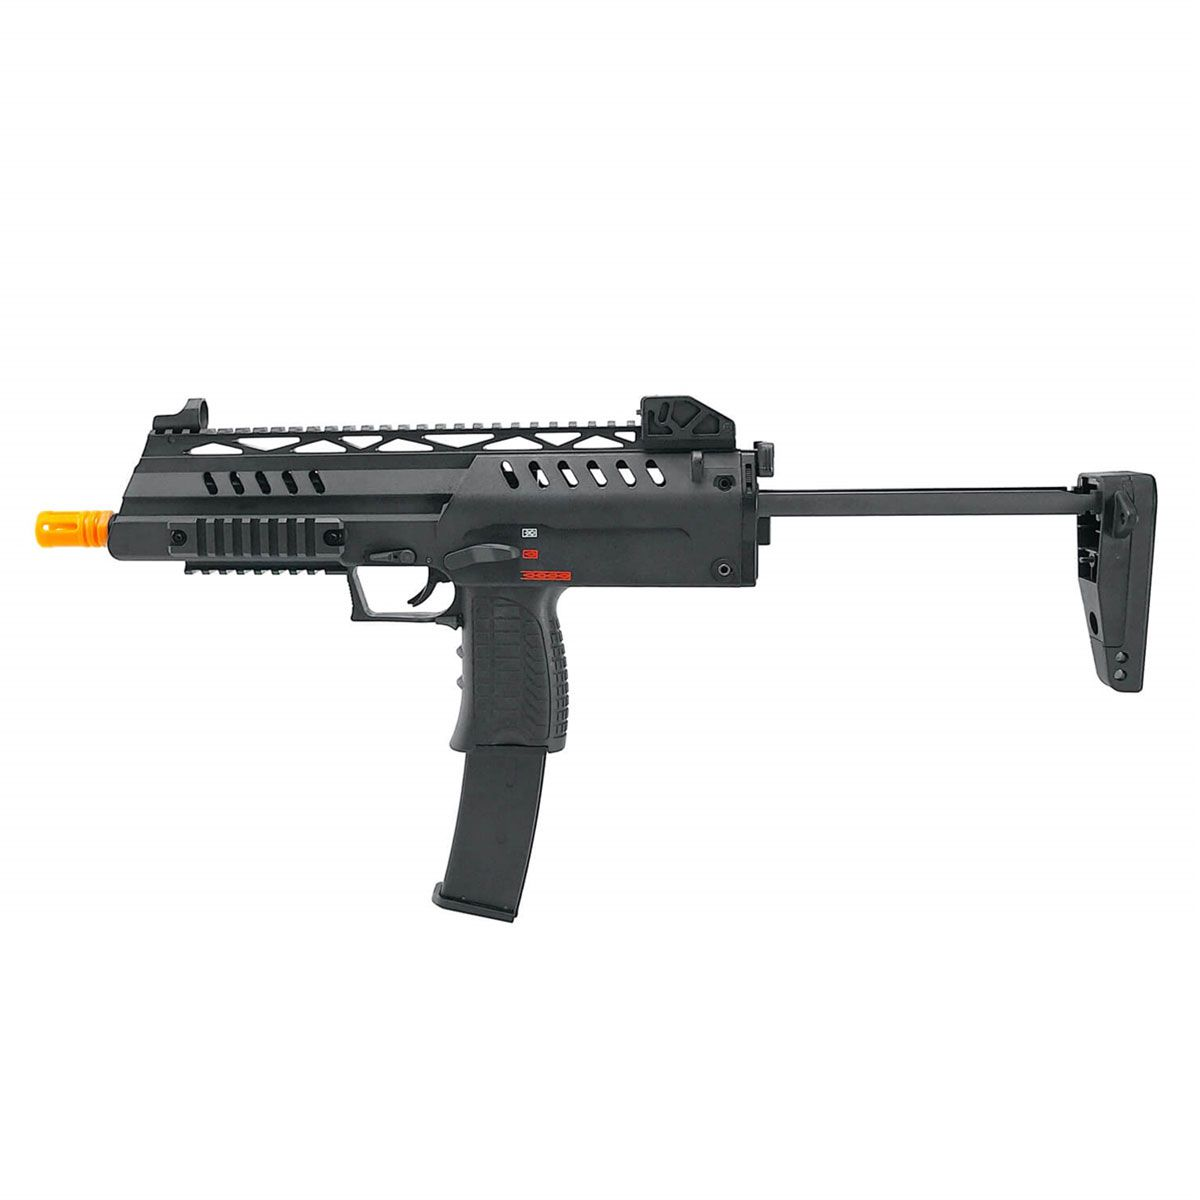 Rifle de Airsoft WE a Gás GBB MP7 SMG8 Blowback 6mm